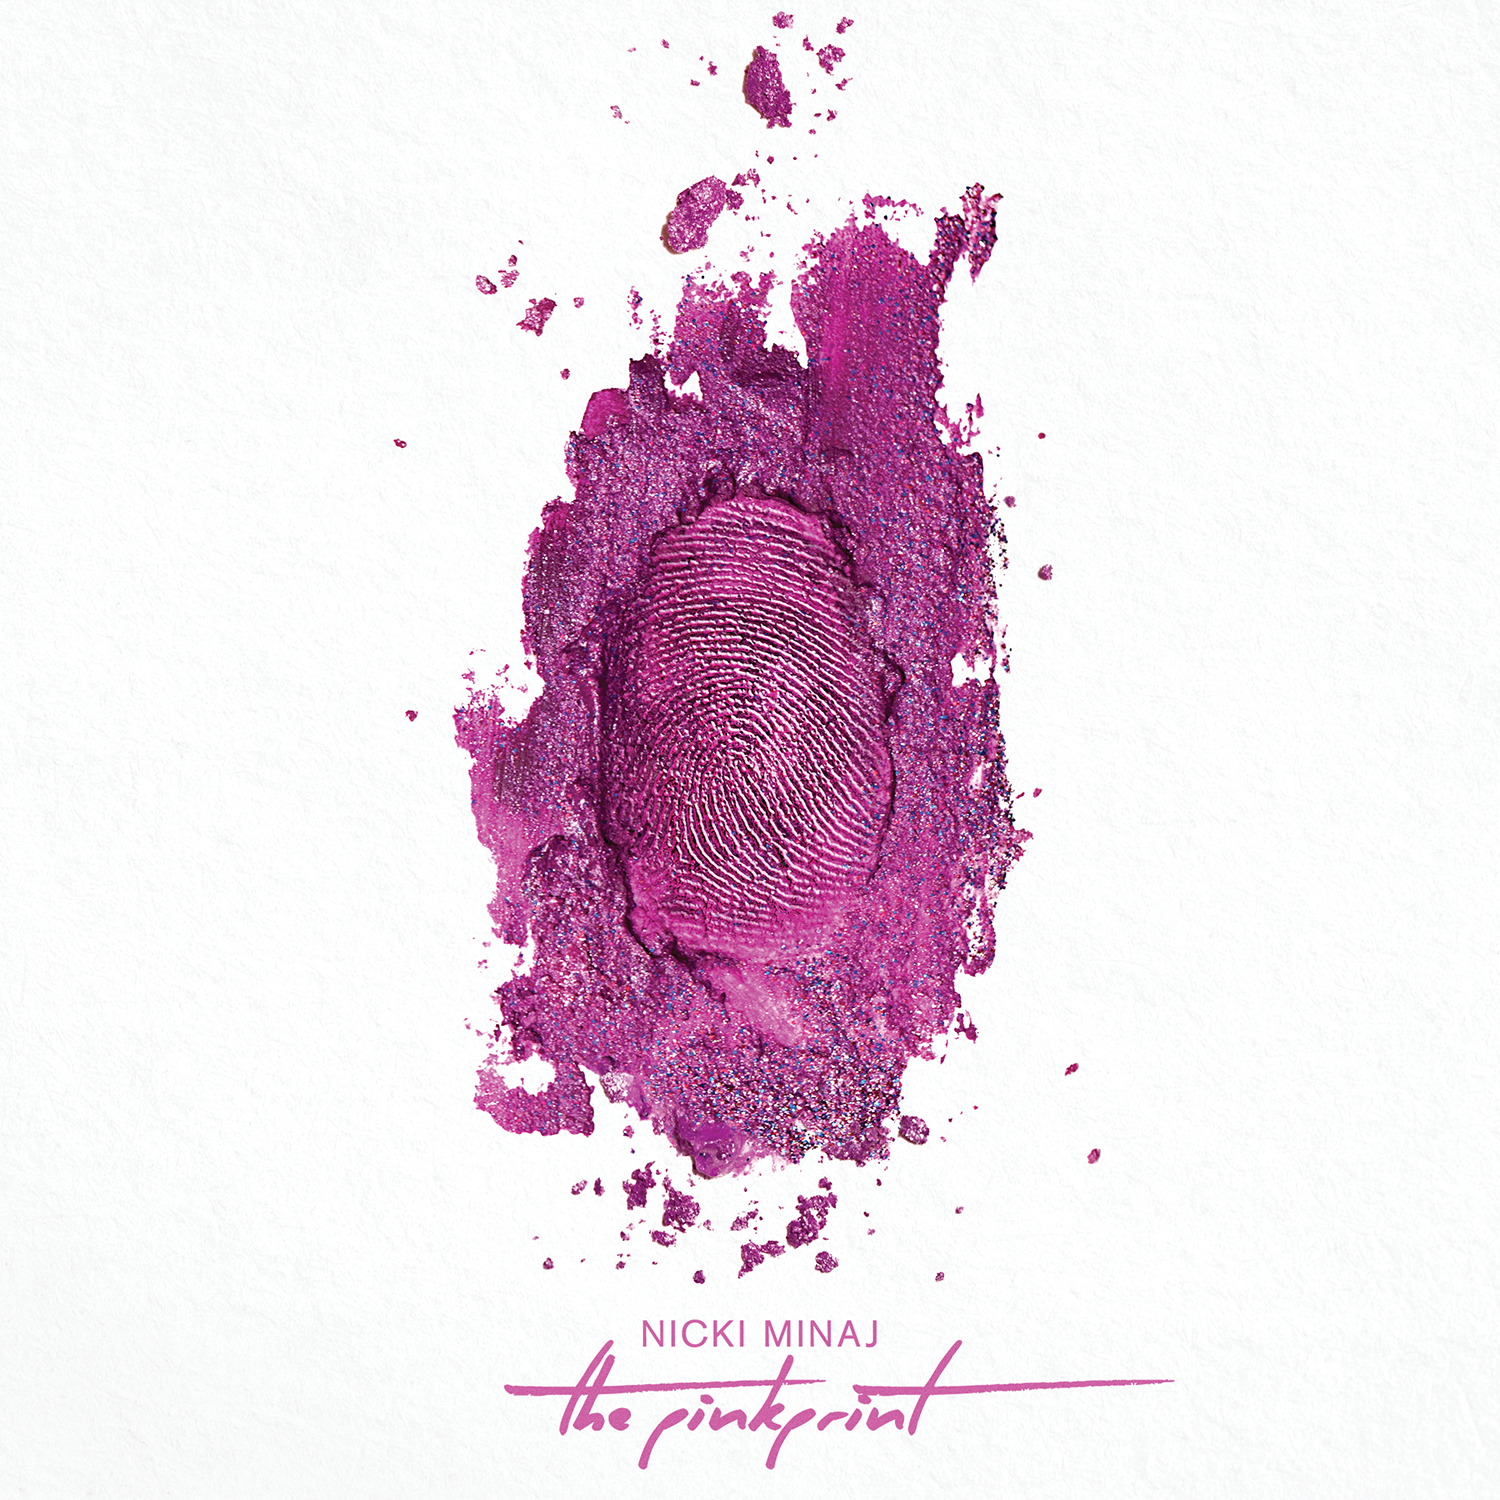 The_pinkprint_deluxe_cover